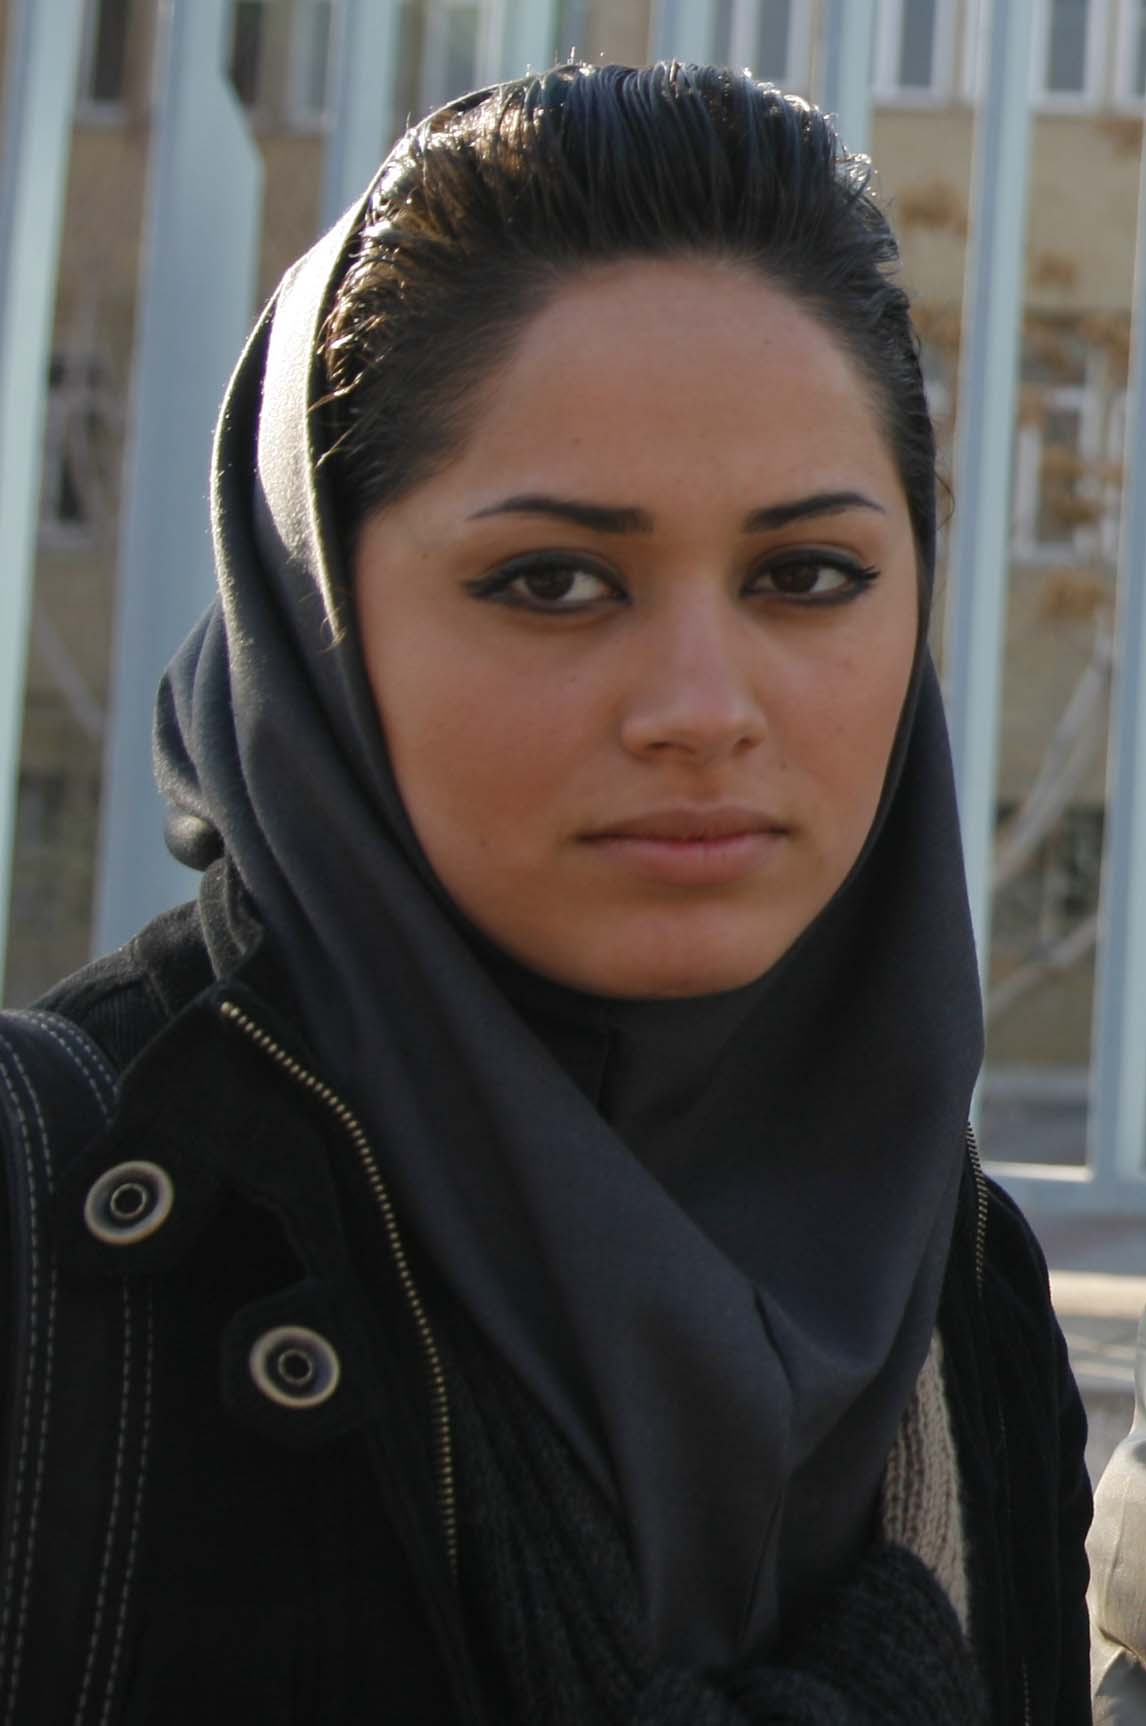 Iranian most beauty girl porn pic can not